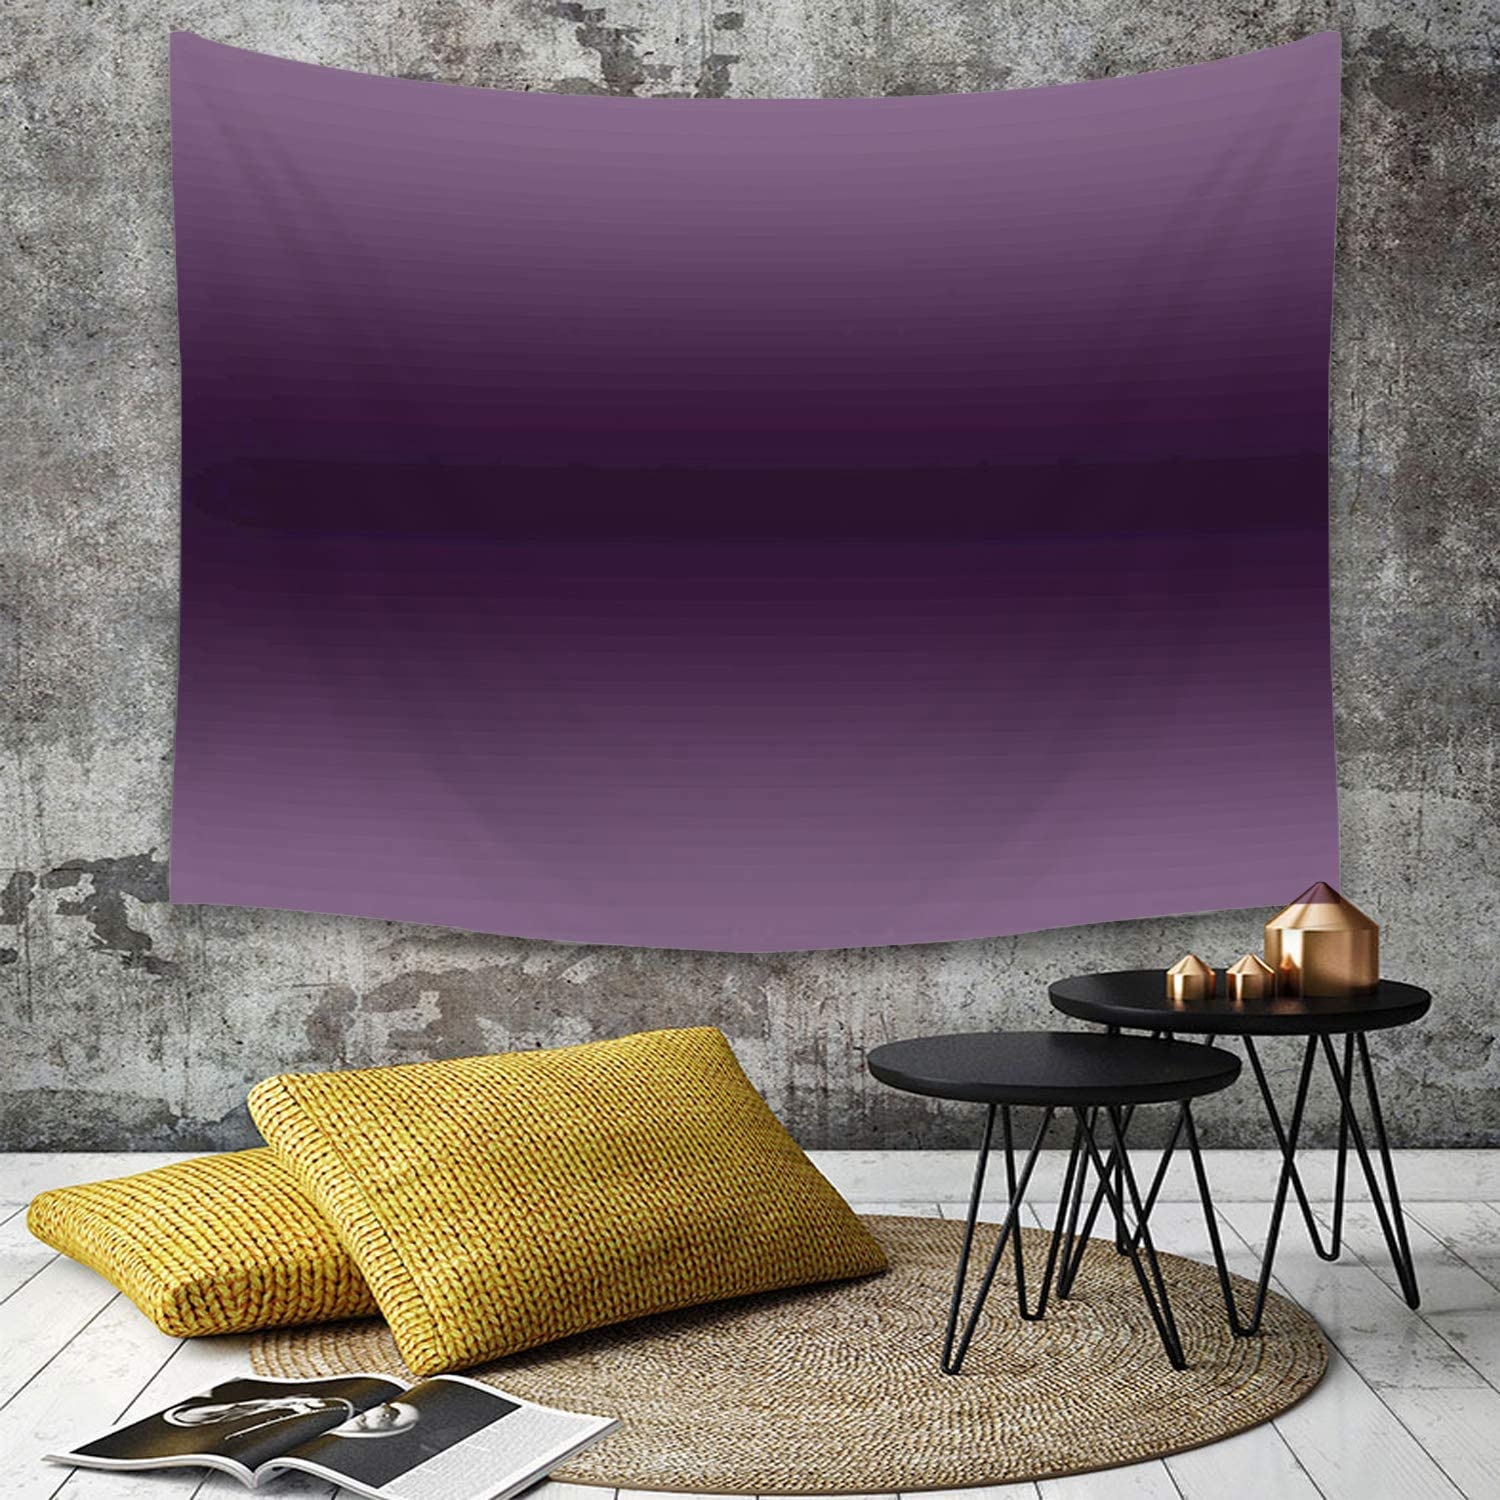 Yaoni Tapestry Wall Hanging Ombre Hollywood Glam Show Inspired Color Ombre Design Digital Printed Decorations Image Purple Home Decor Art Tapestries For Bedroom Living Room Dorm Apartment Amazon Co Uk Kitchen Home